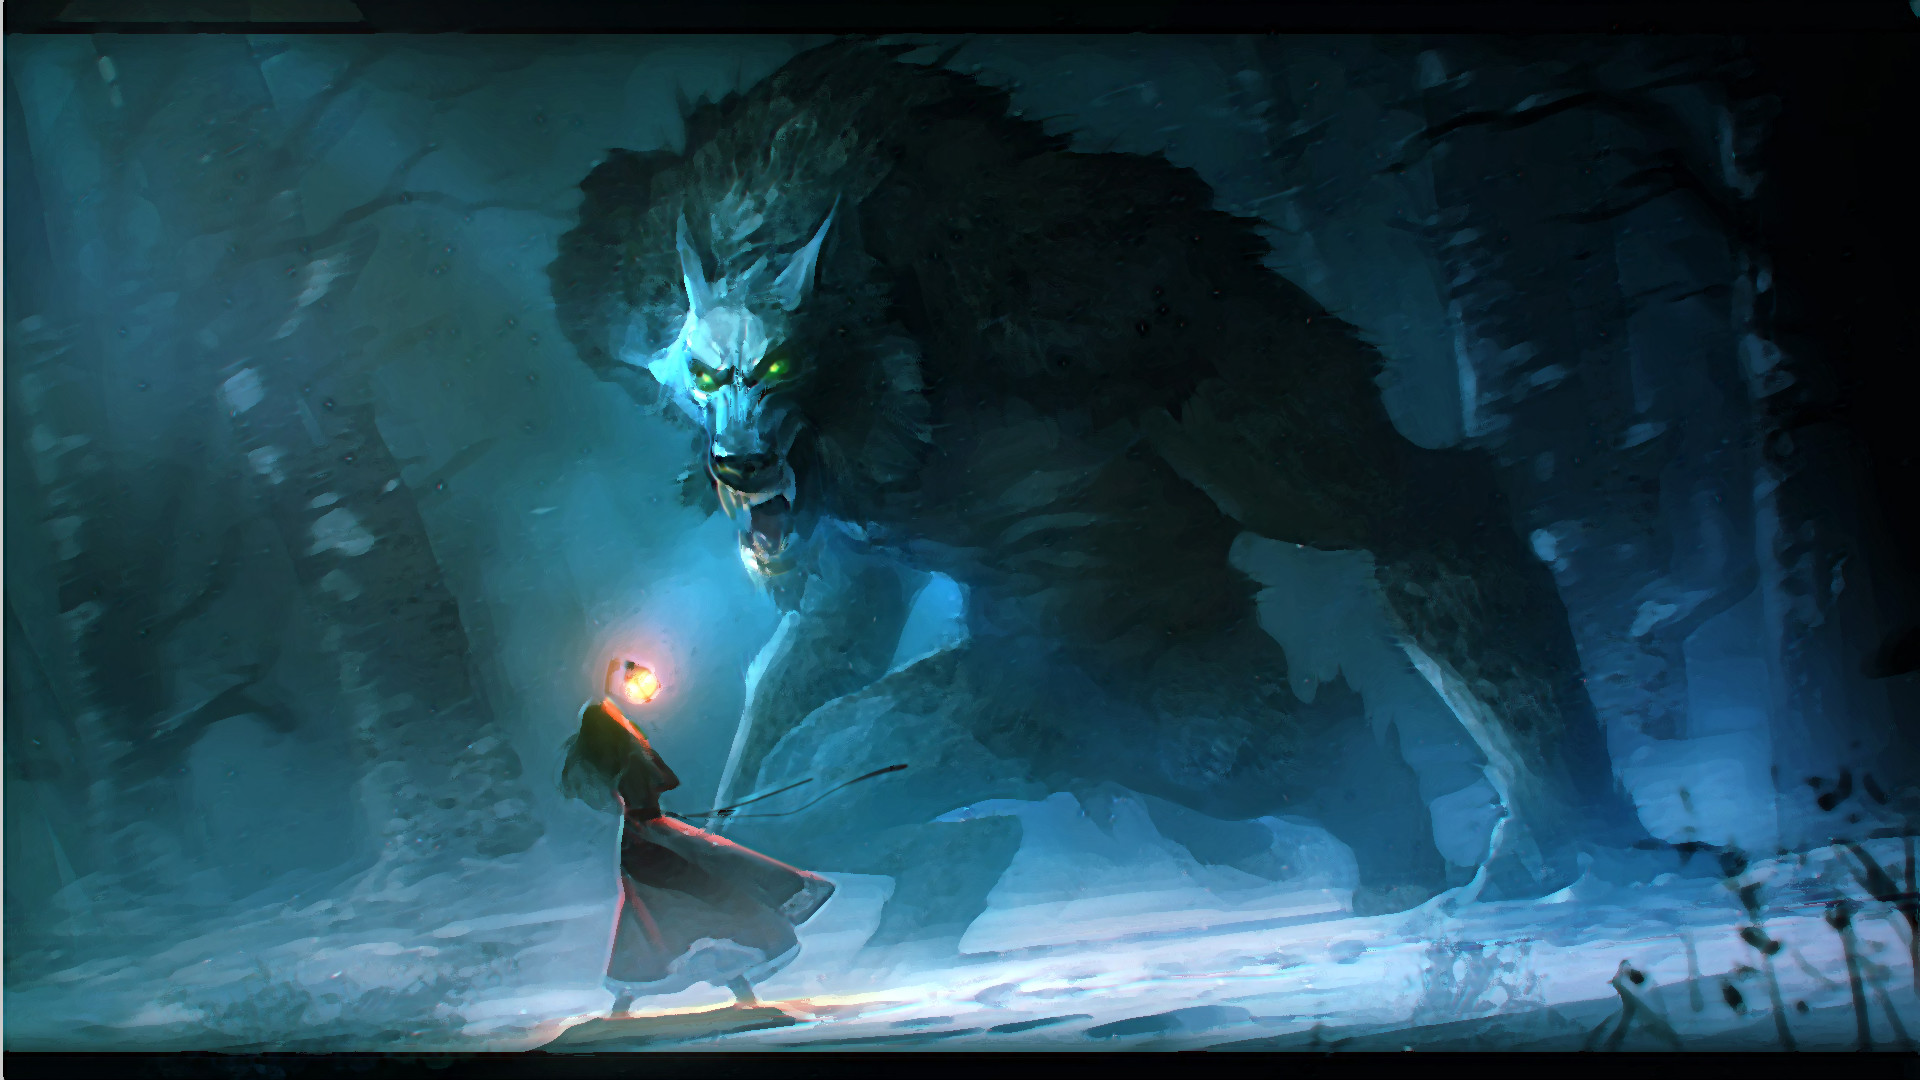 1920x1080 Werewolf Full HD wallpaper by Niconoff deviantart | Full HD Wallpapers .